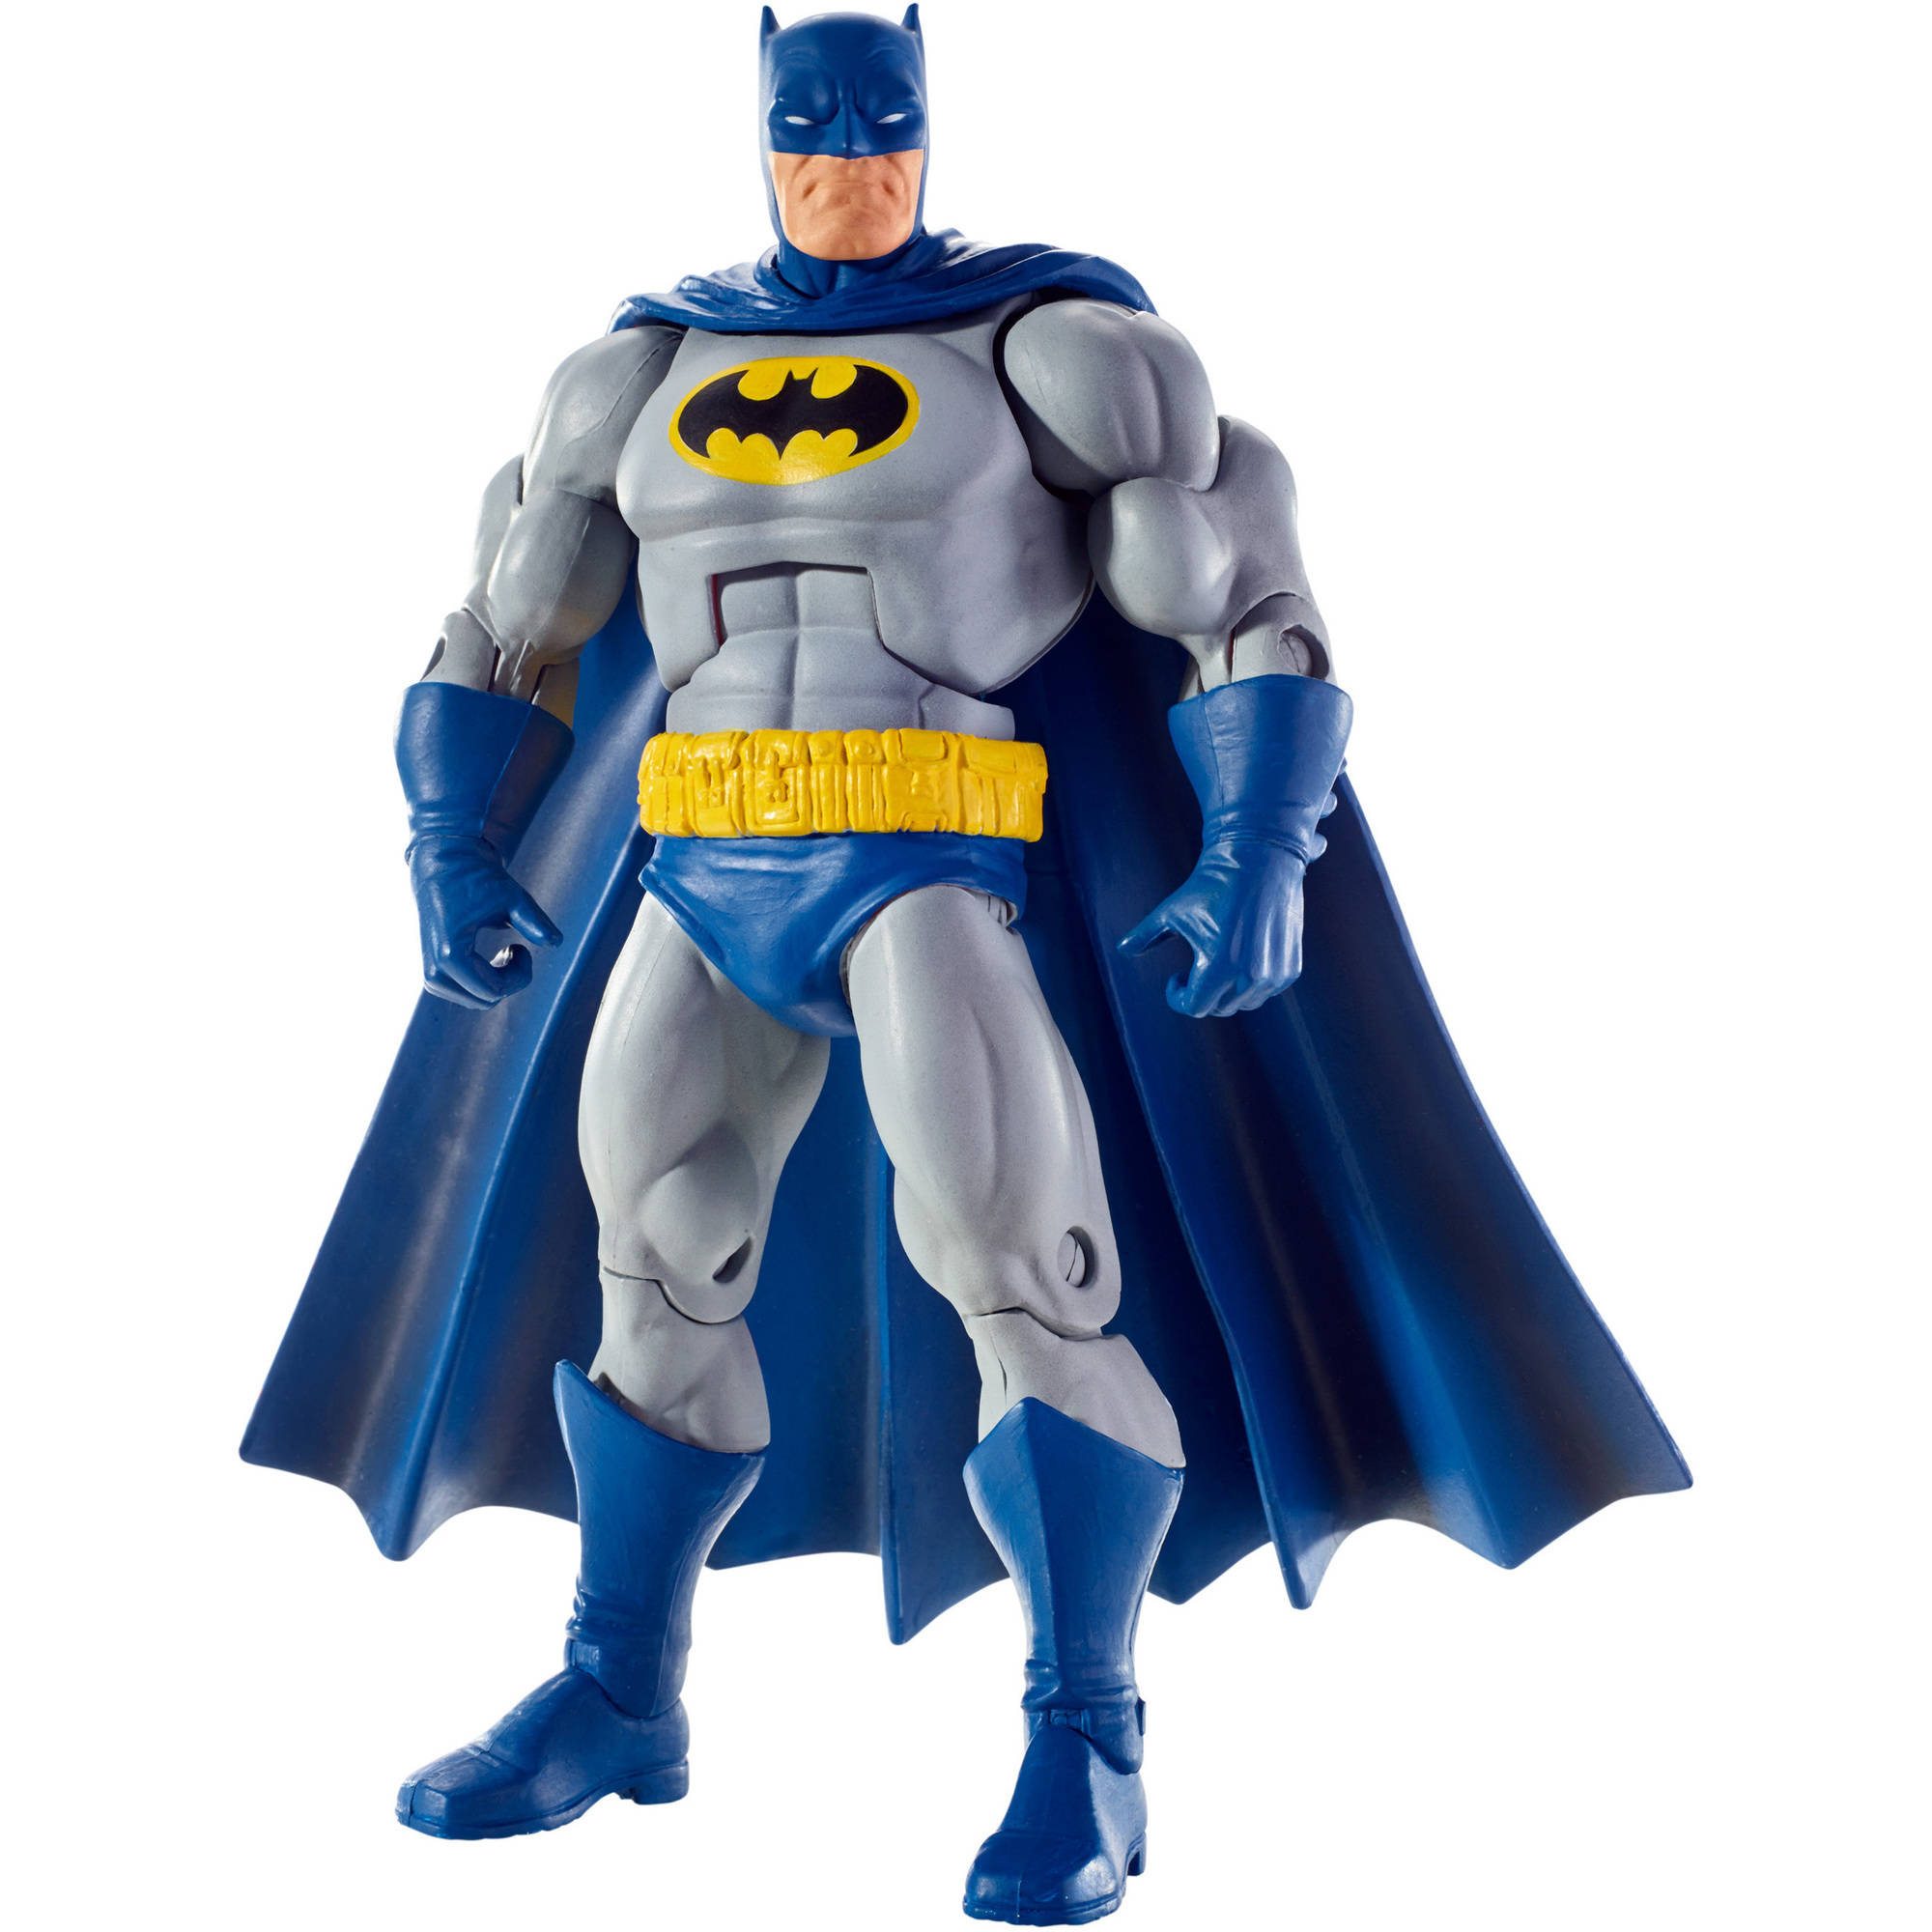 Dark Knight Returns Batman by Mattel